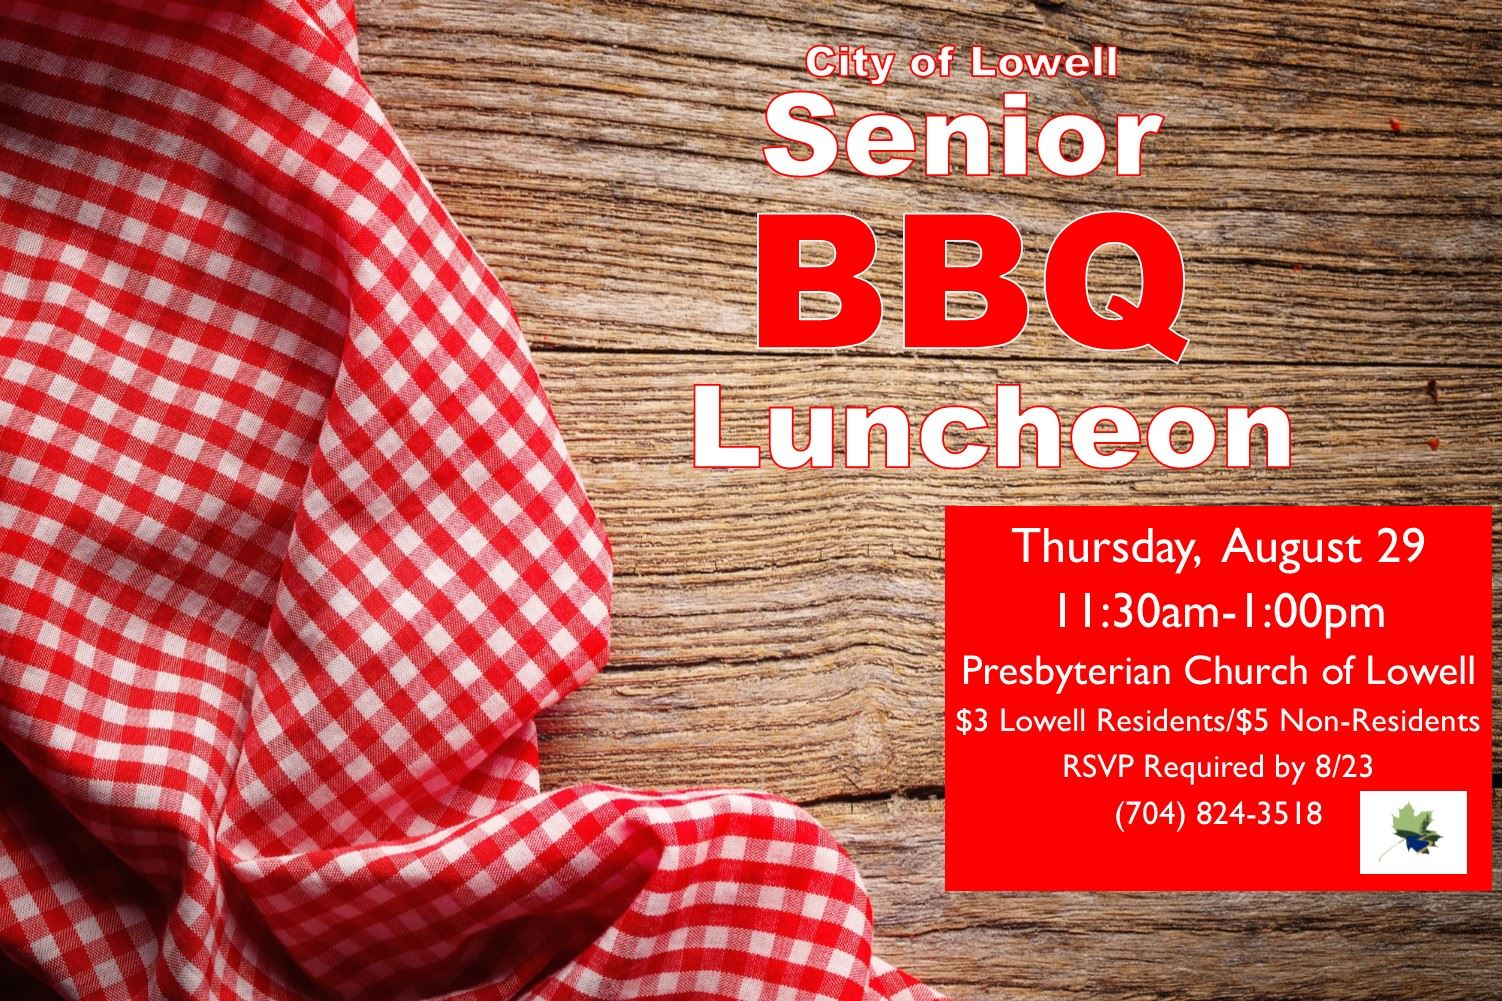 Senior BBQ Luncheon